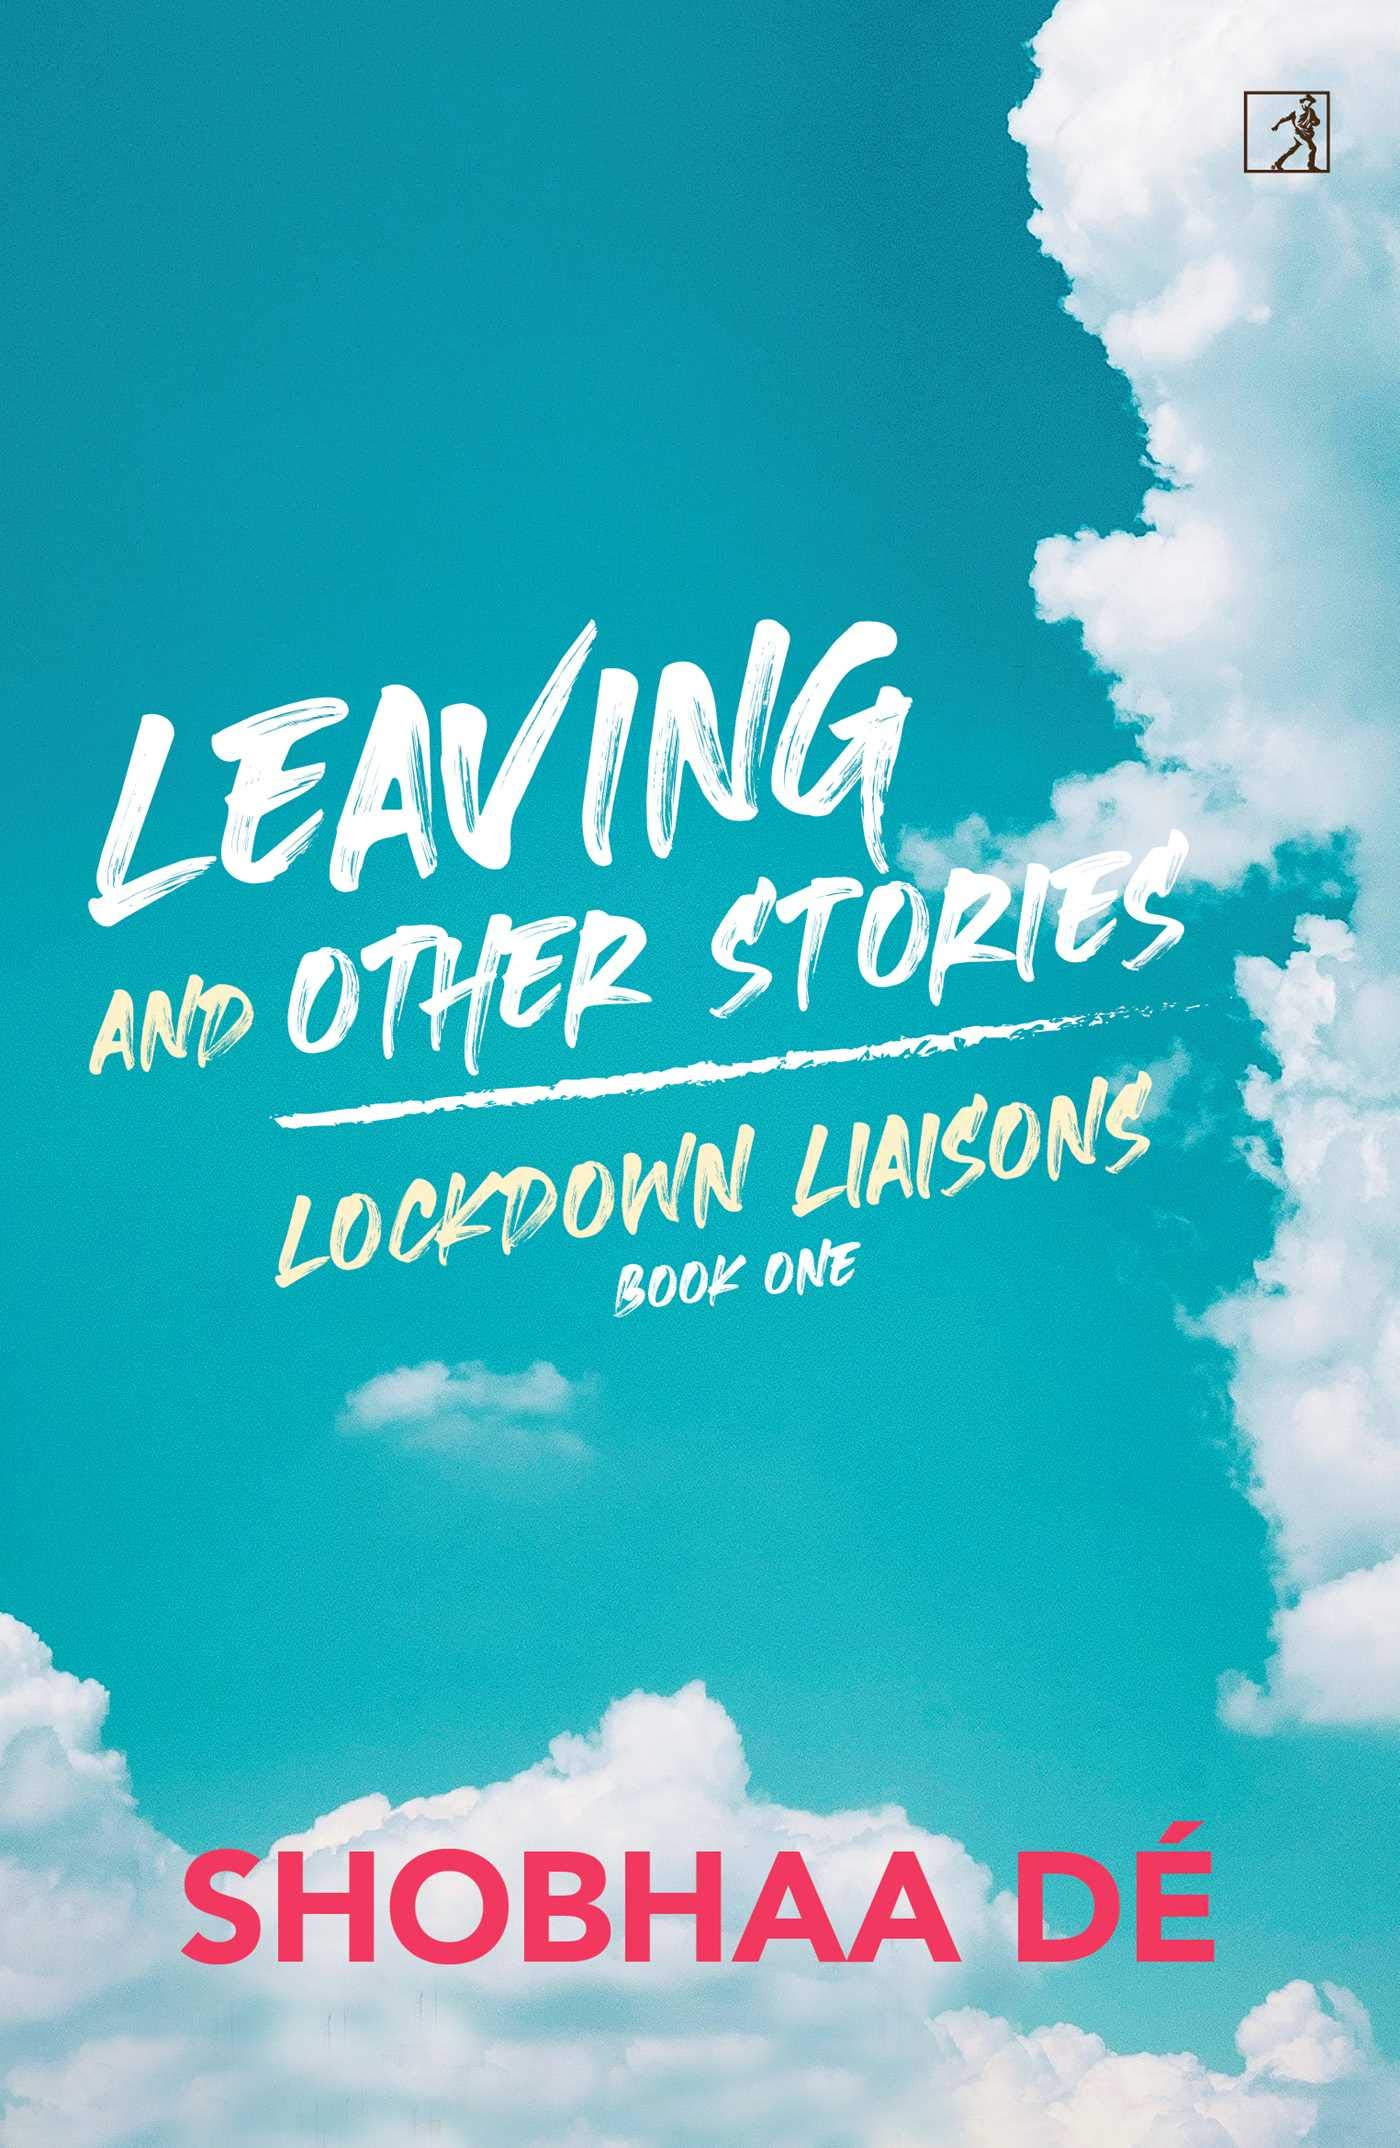 Lockdown Liaisons: Leaving and Other Stories